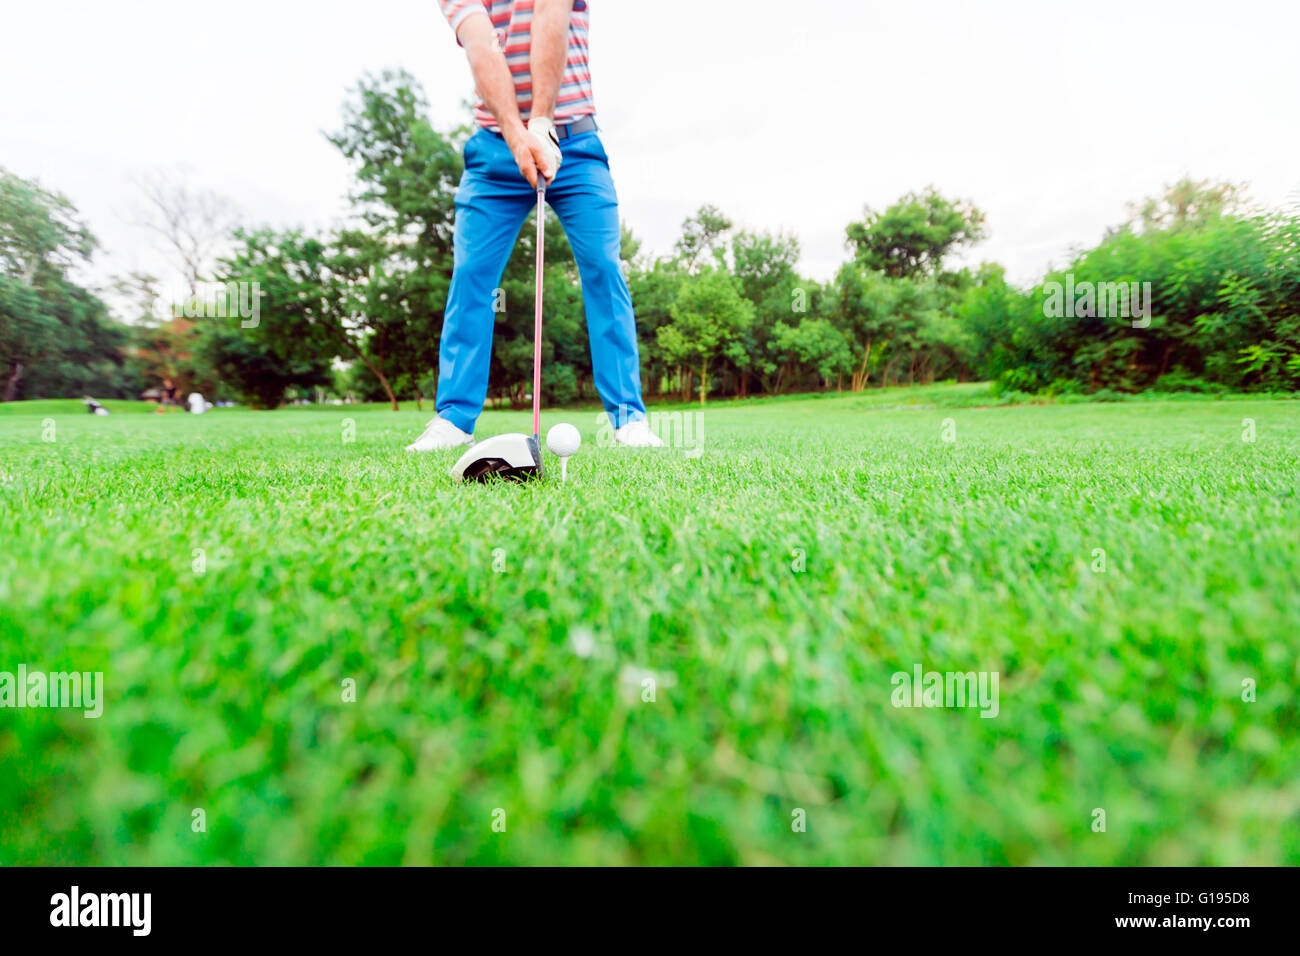 Golfer getting ready to take a shot. Wide angle photo - Stock Image